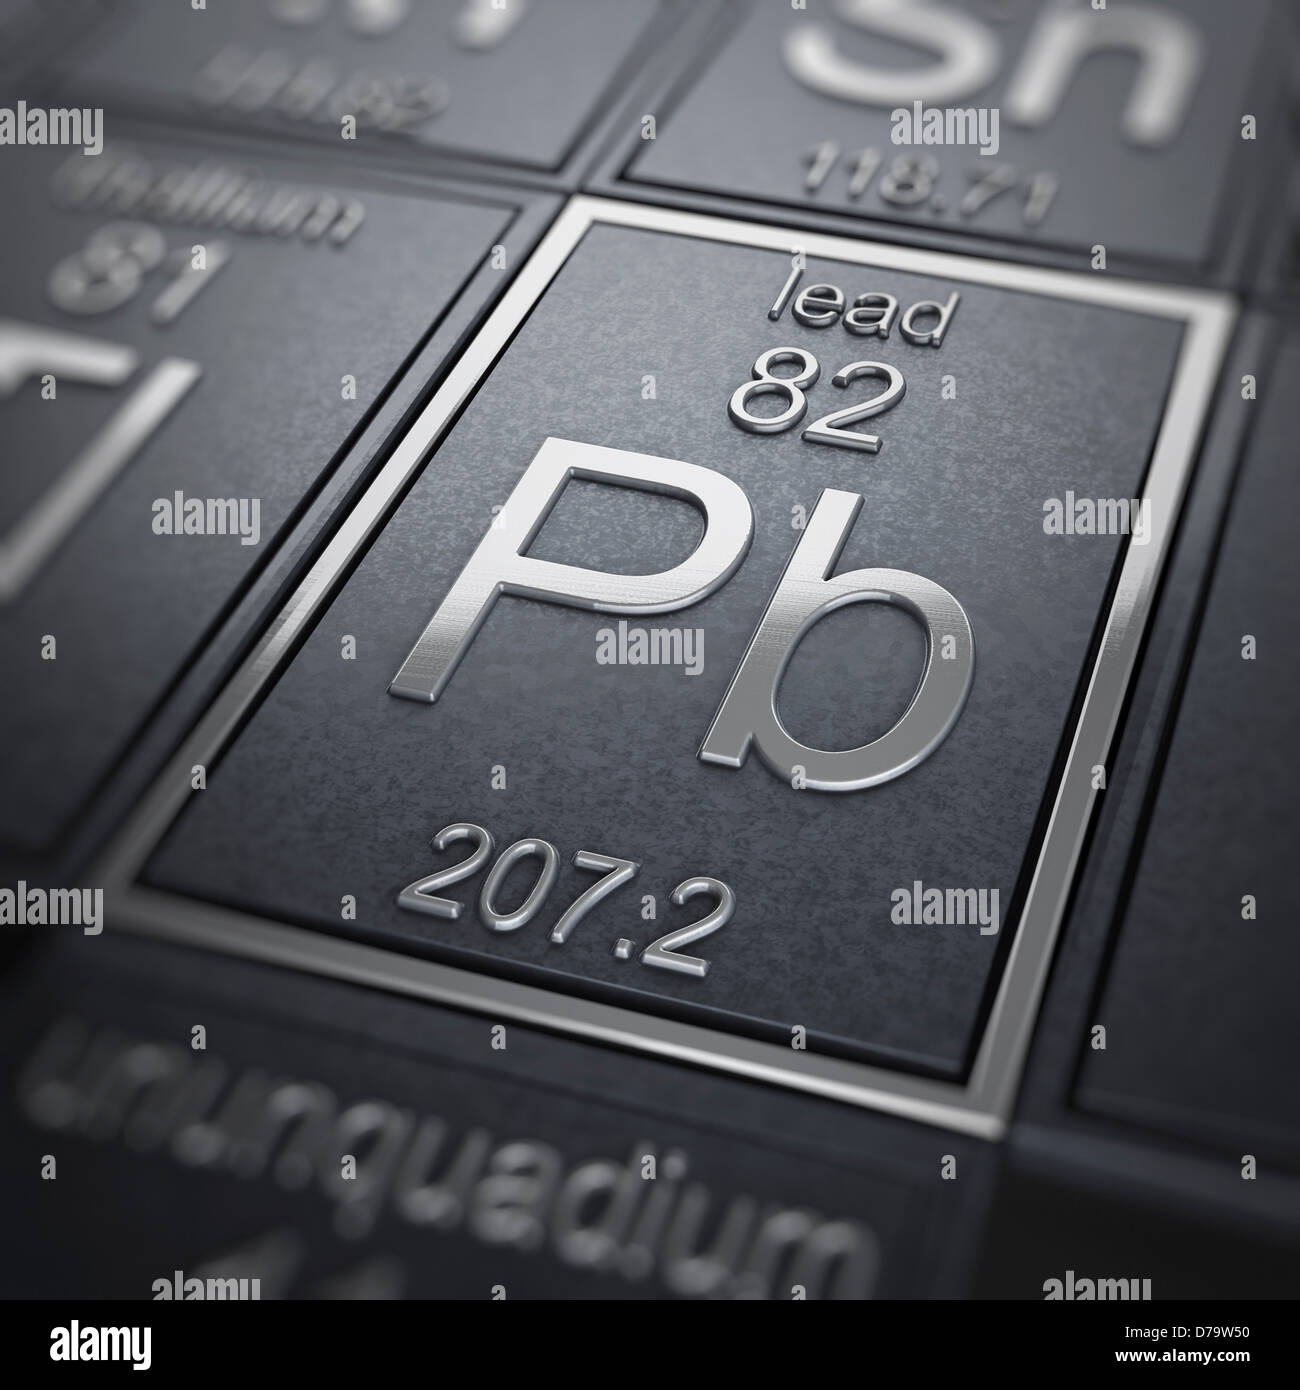 Lead Chemical Element Stock Photo, Royalty Free Image: 56151004 ...